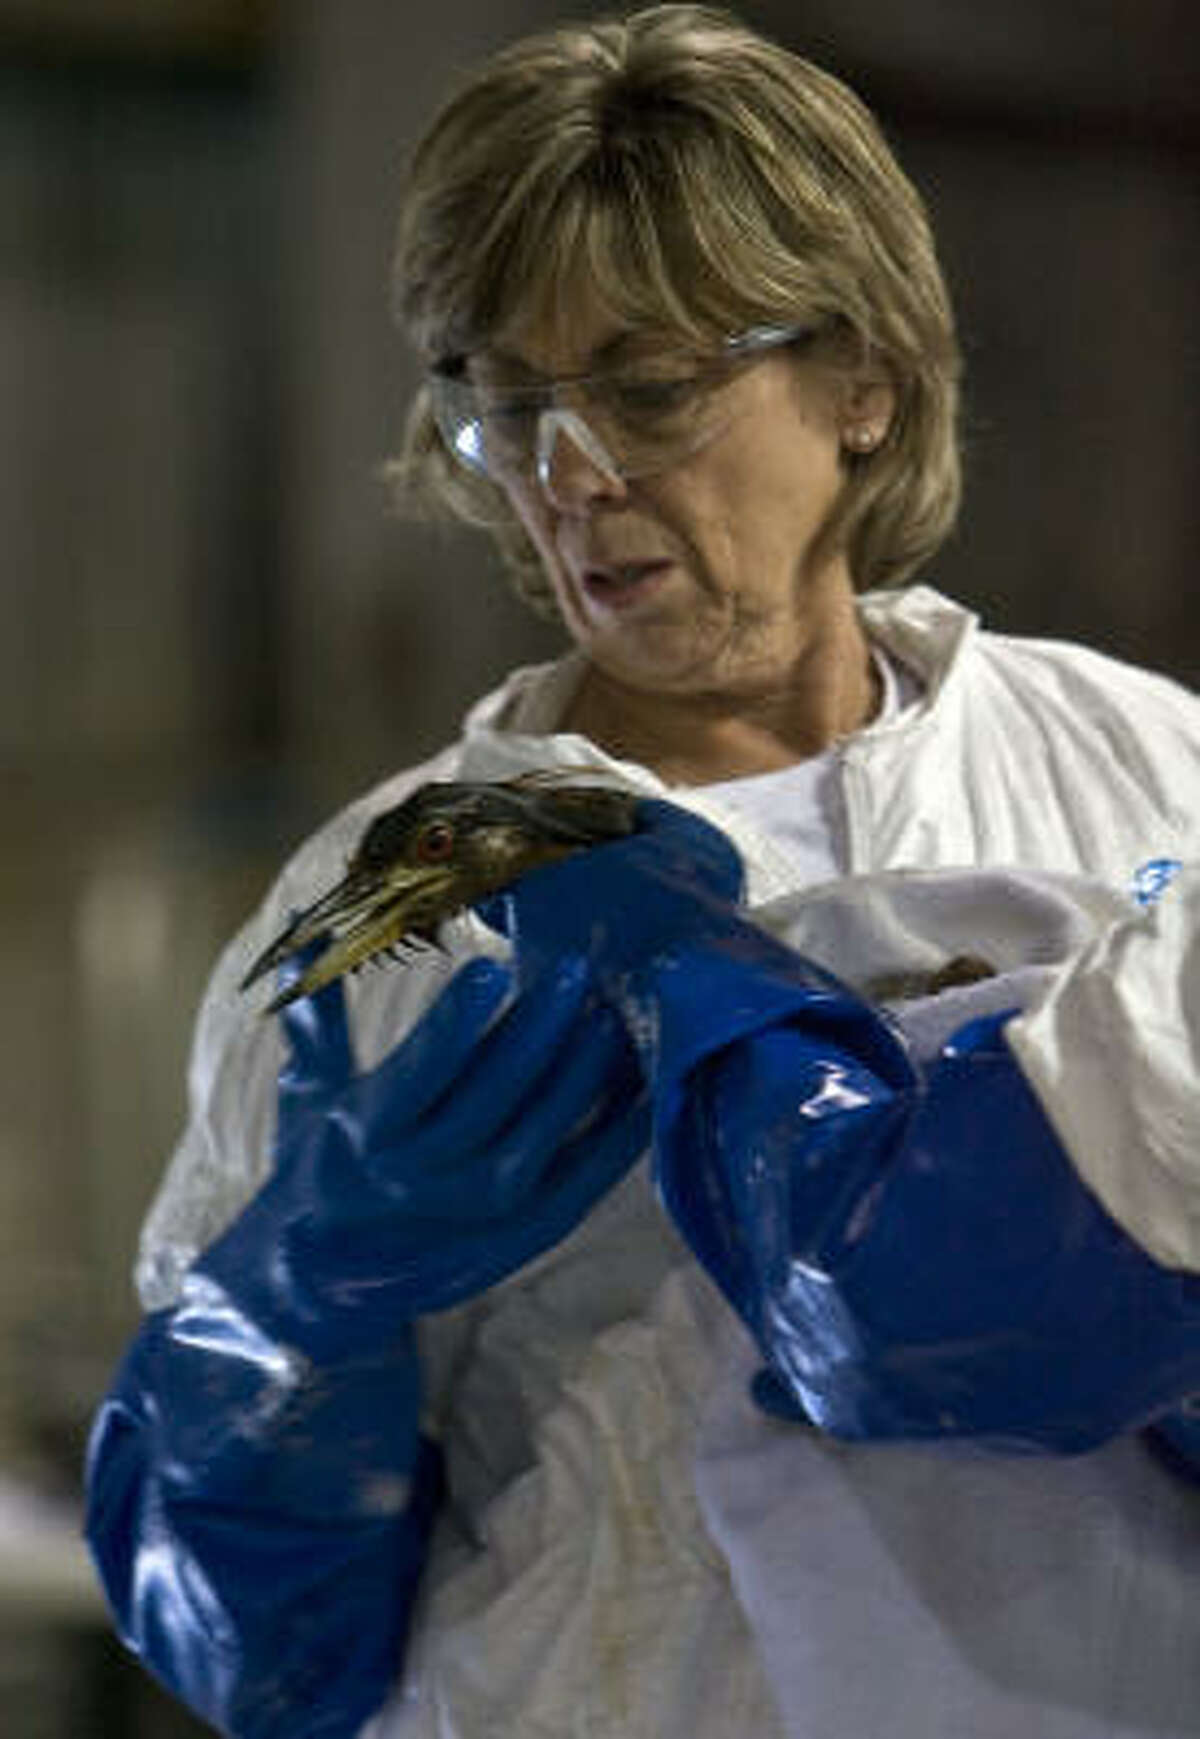 Linda Holmes with Wildlife Response Services cleans a Yellow Crowned Night Herring which was covered in oil.